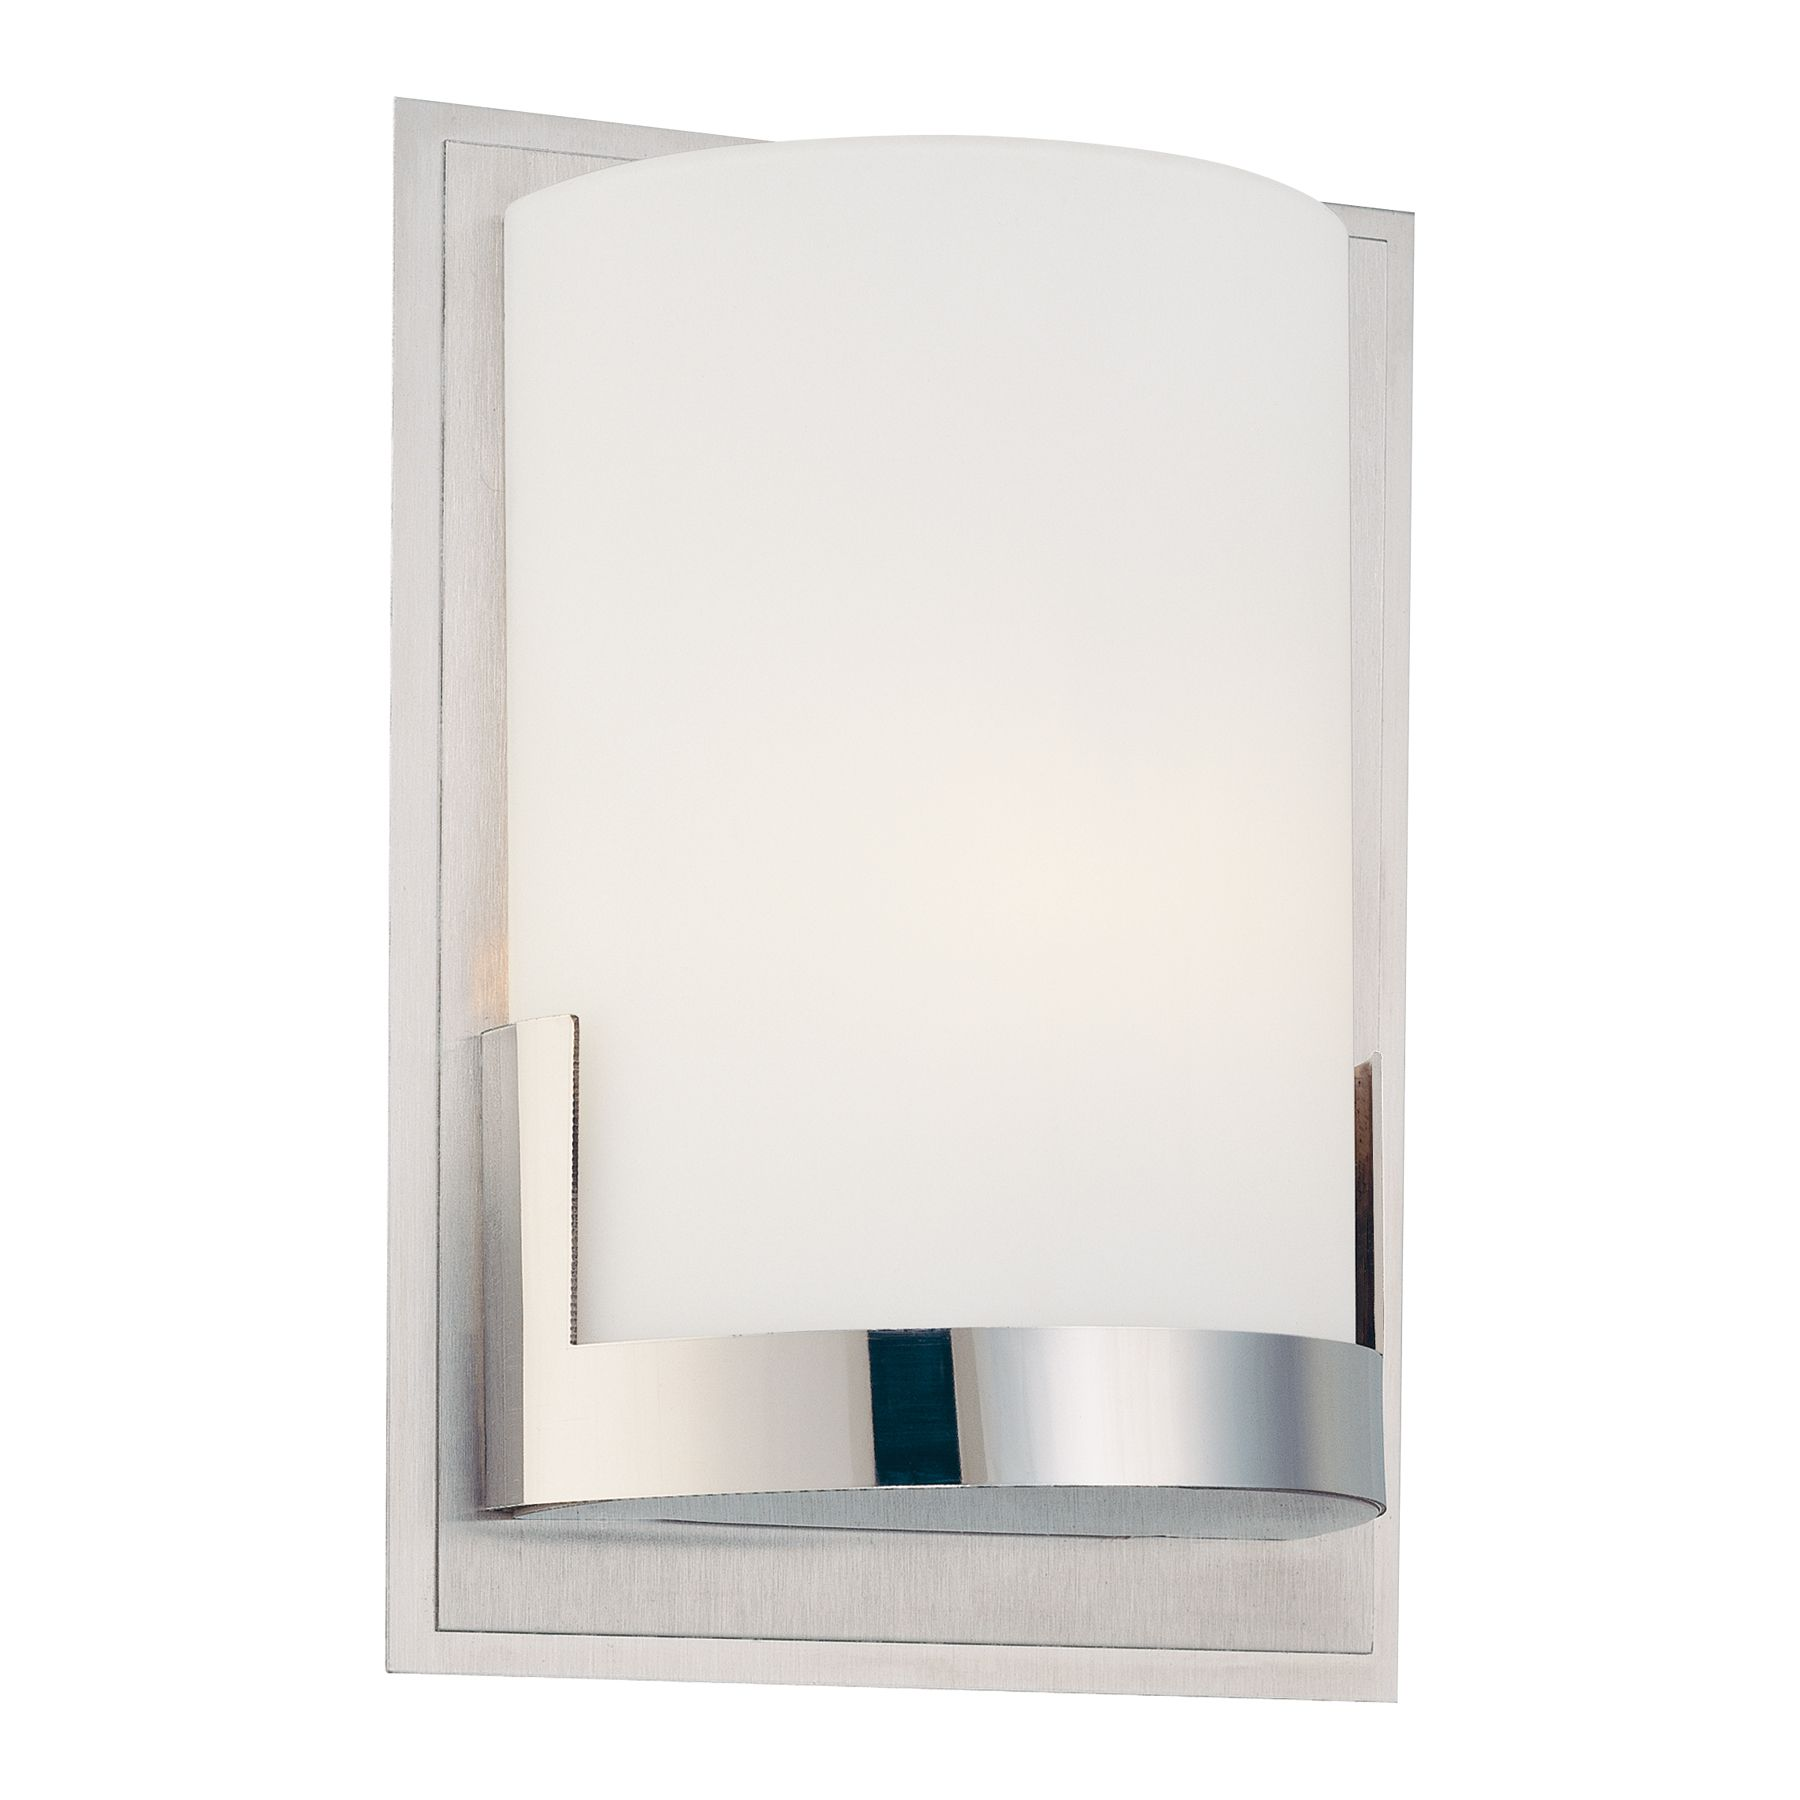 Convex 1 Light Wall Sconce By George Kovacs P5951 077 Bathroom Sconces Bathroom Sconces Chrome Sconces